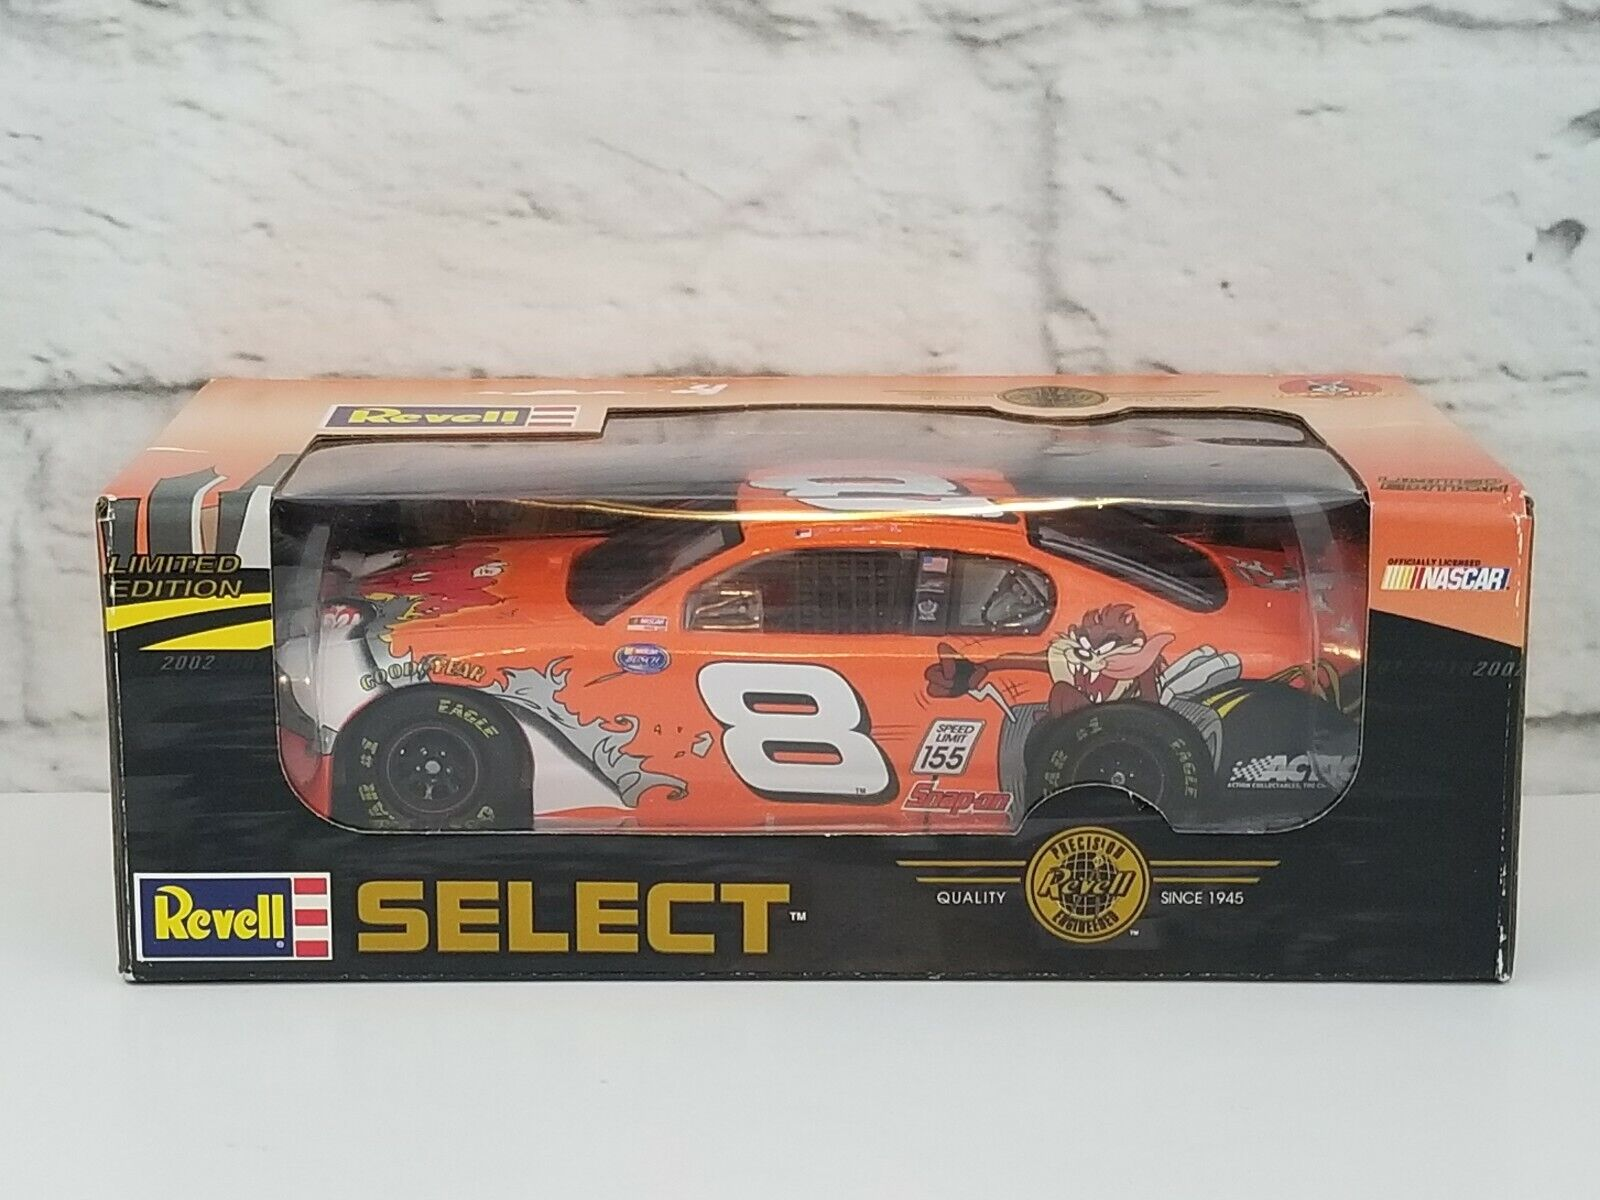 Revell Select Looney Tunes Taz Dale Earnhardt Jr Limited Edition #8 Car Nascar